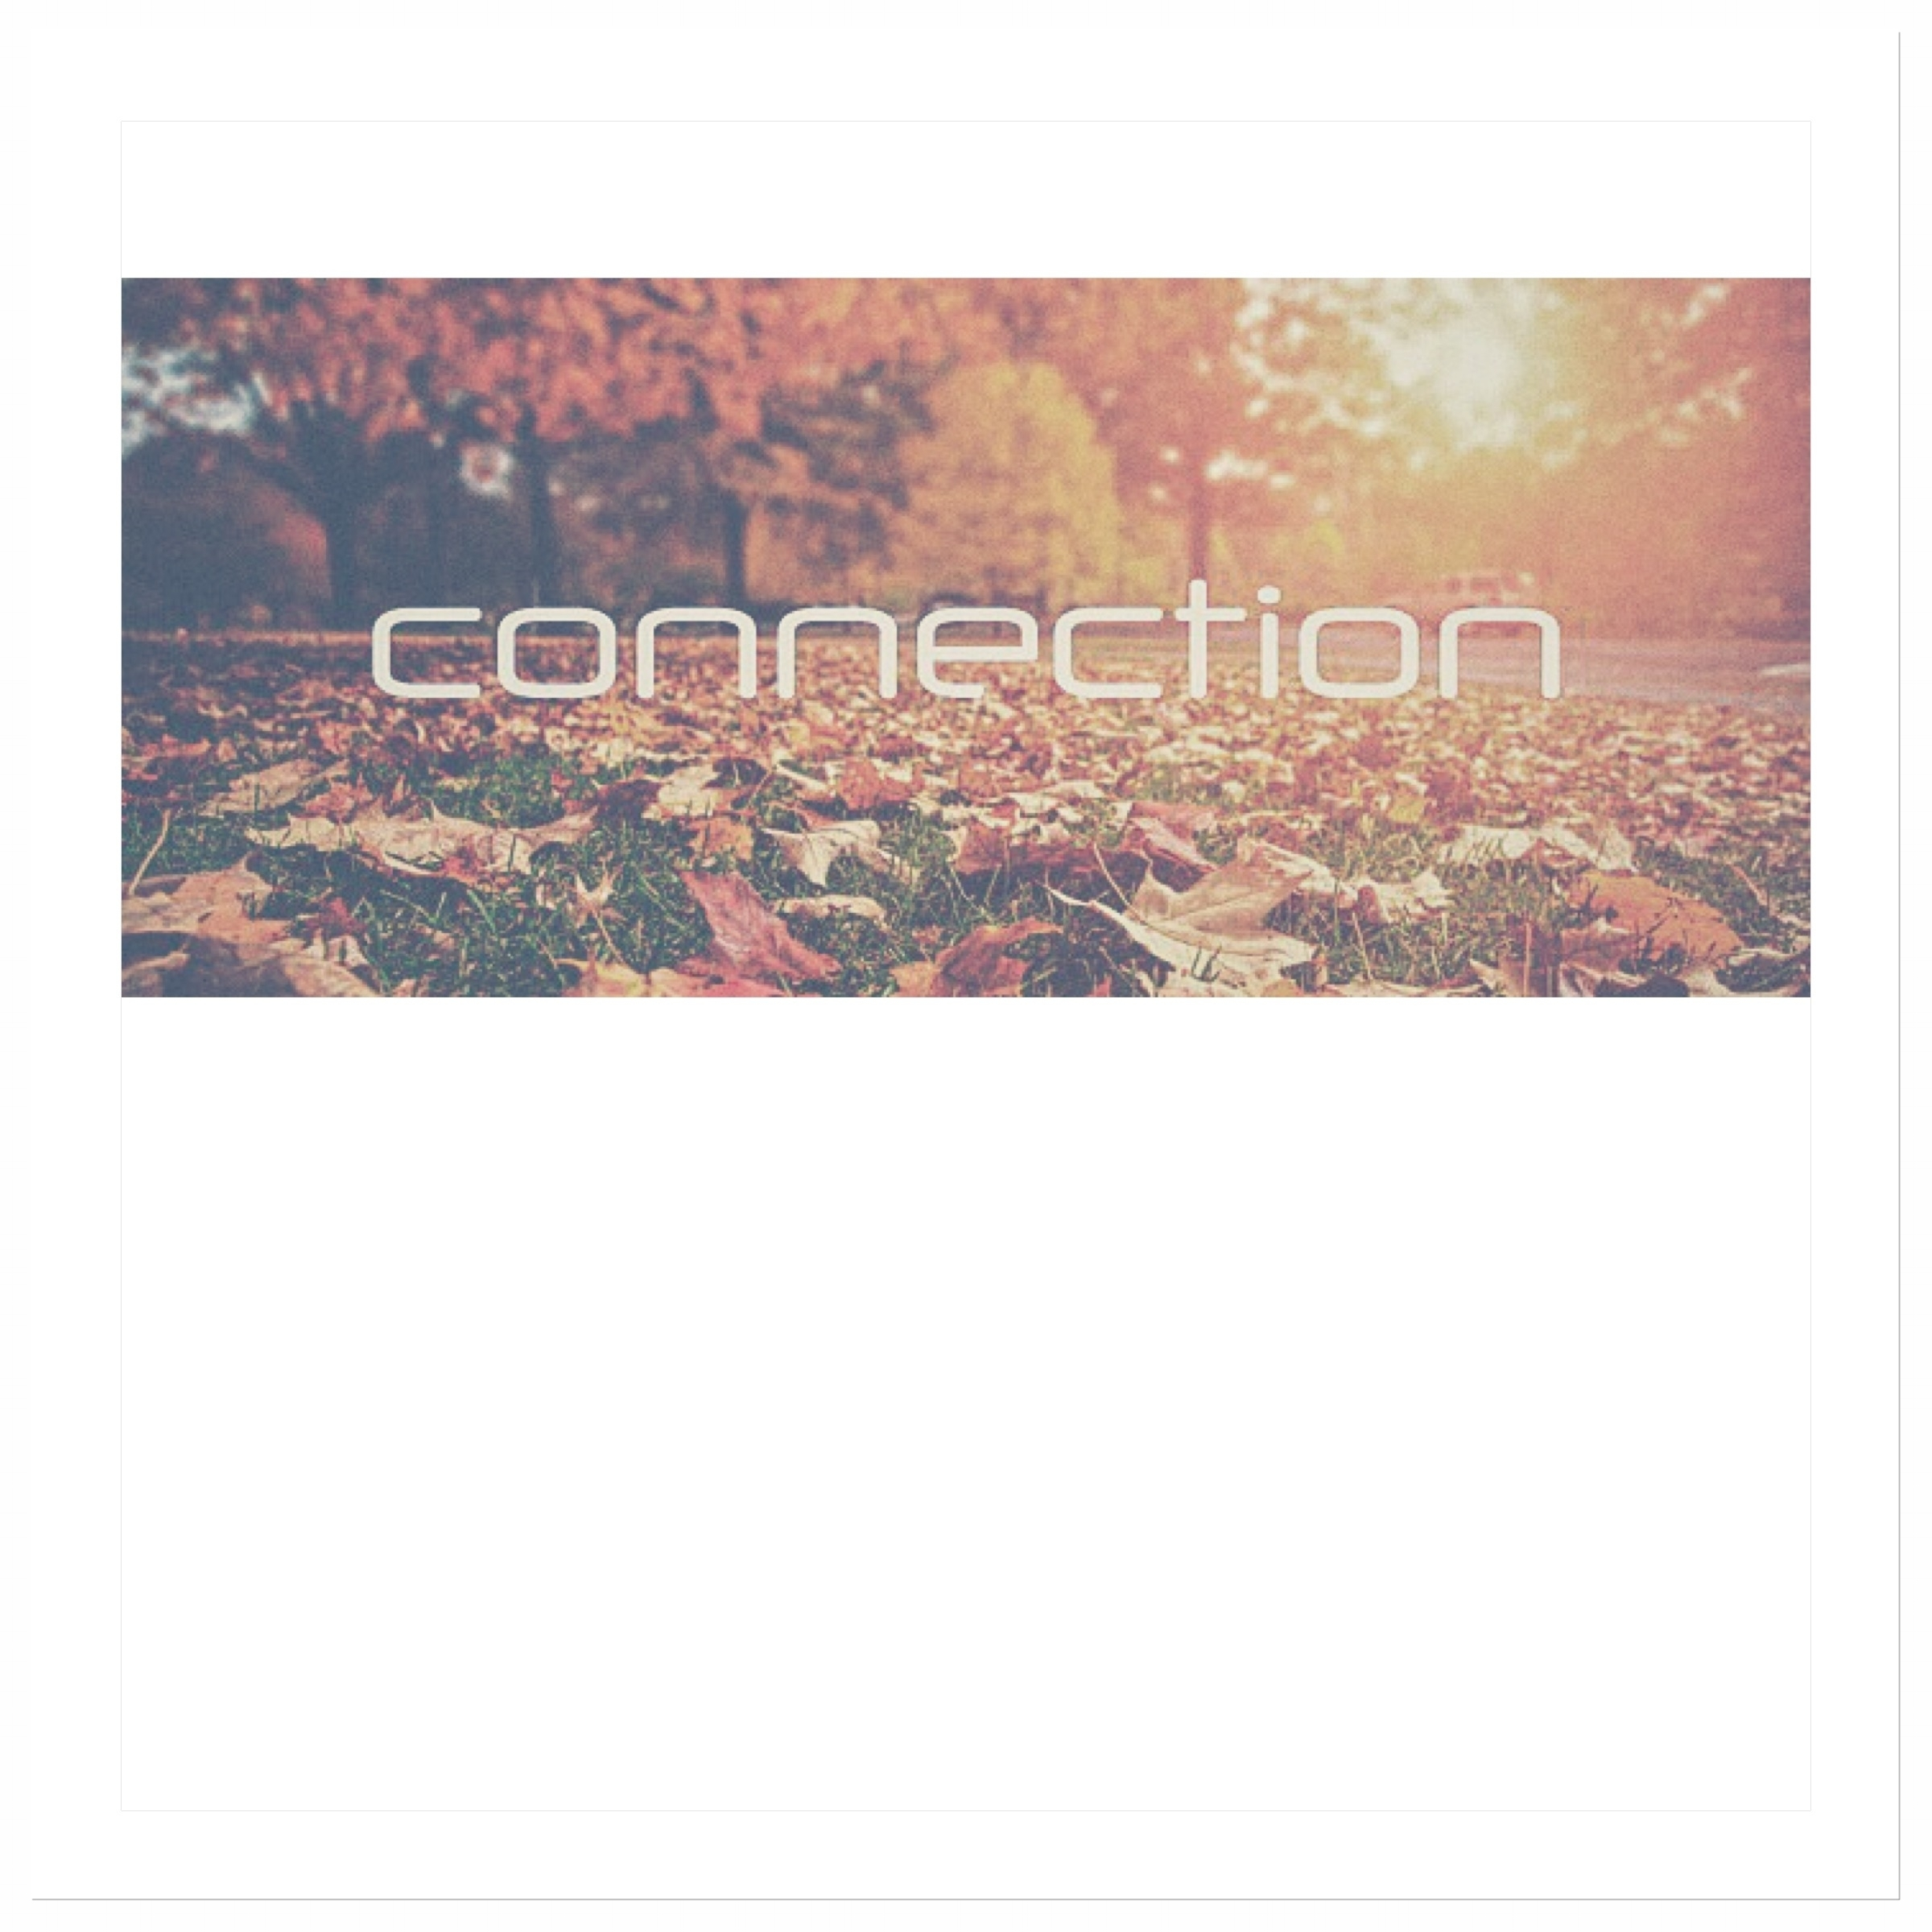 Connection (cover art).JPG